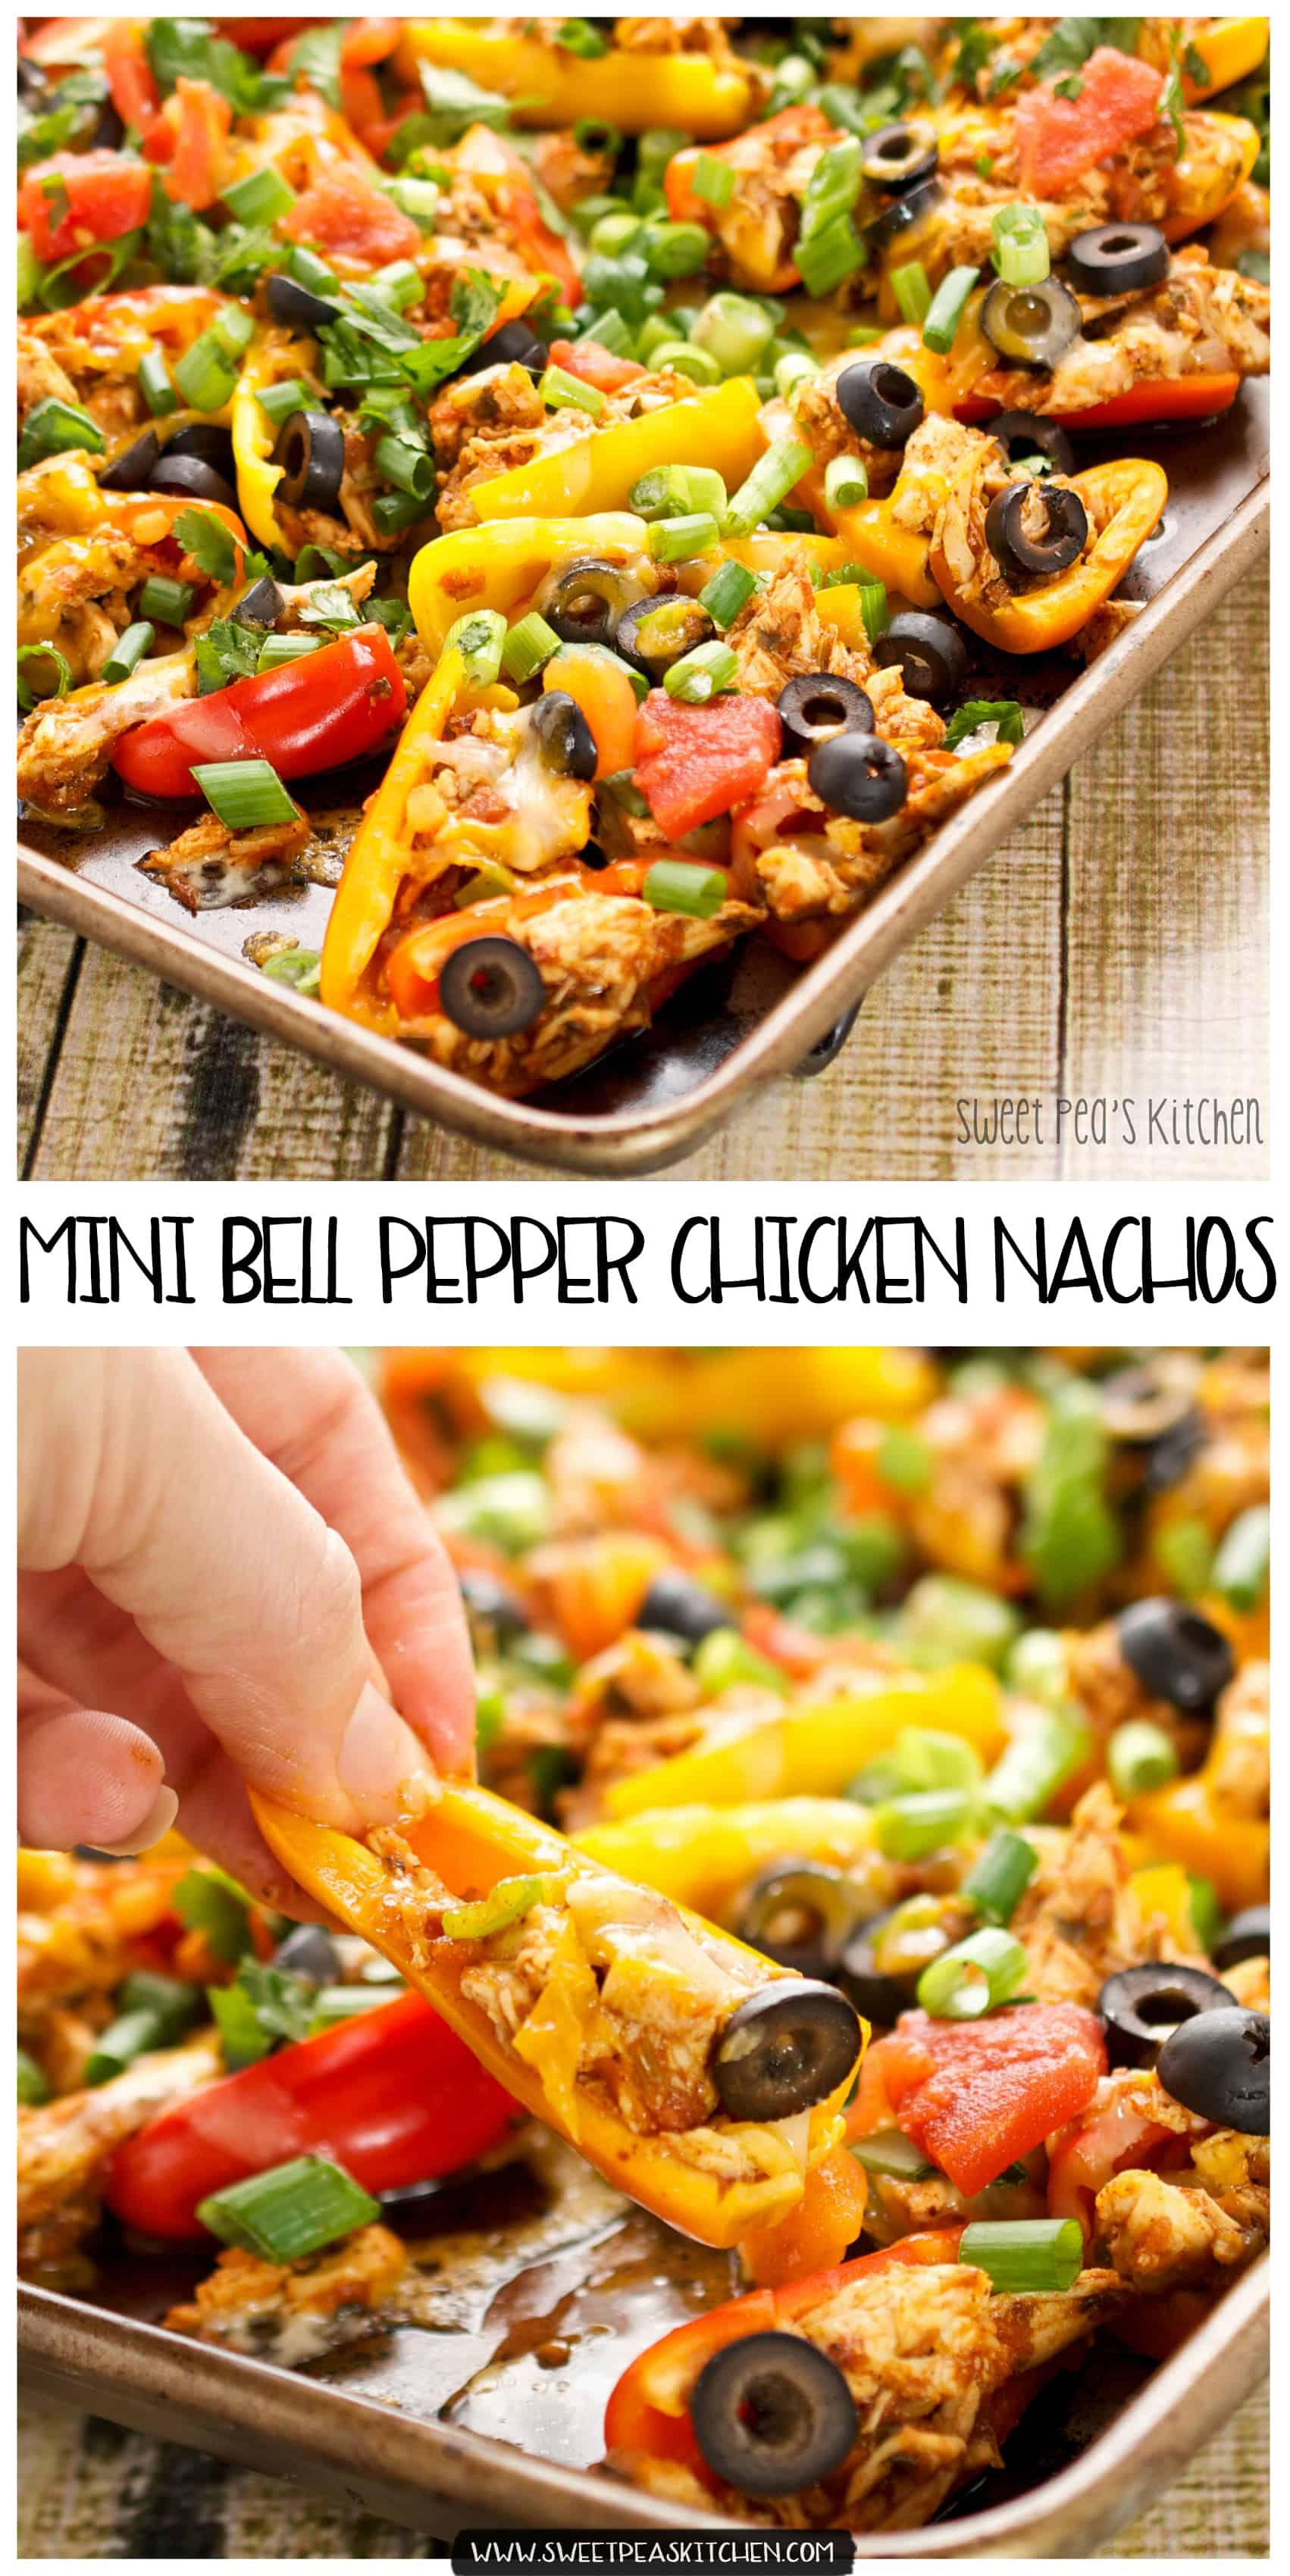 Chicken Healthy Nachos On Mini Bell Peppers Sweet Pea S Kitchen Recipe Stuffed Peppers Healthy Nachos Recipes